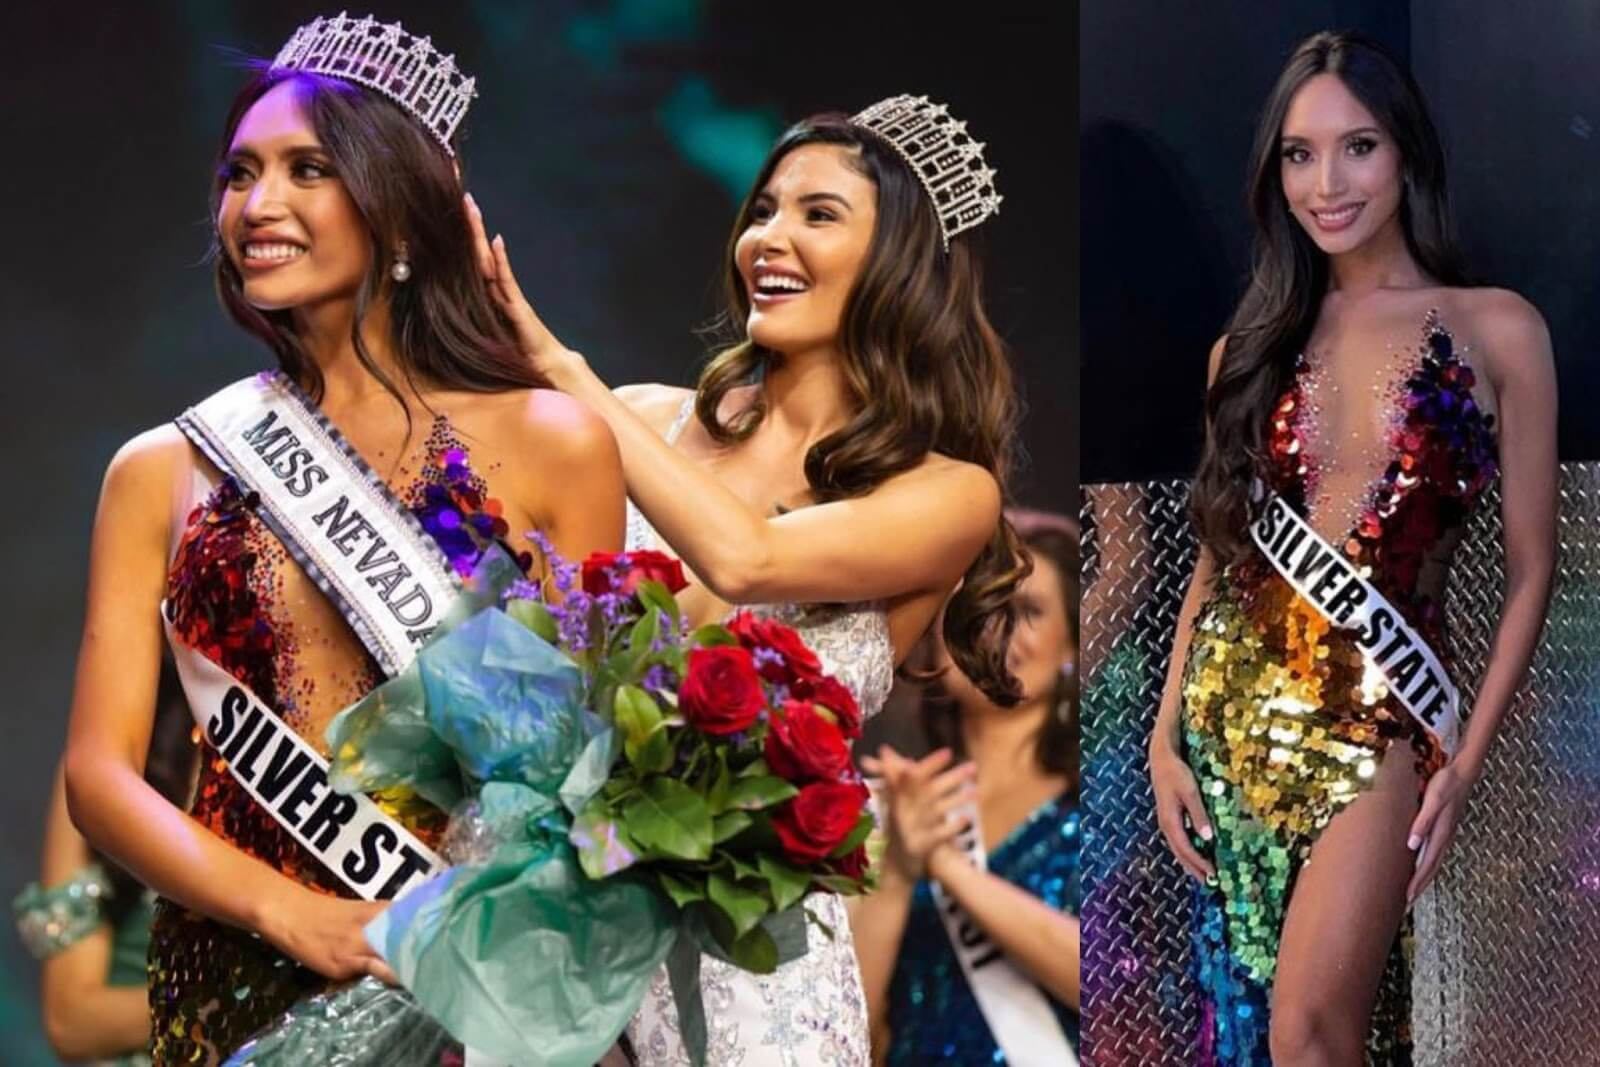 Kataluna Enriquez: Filipino-American and Nevada Native is Crowned First Transgender Miss USA Contestant